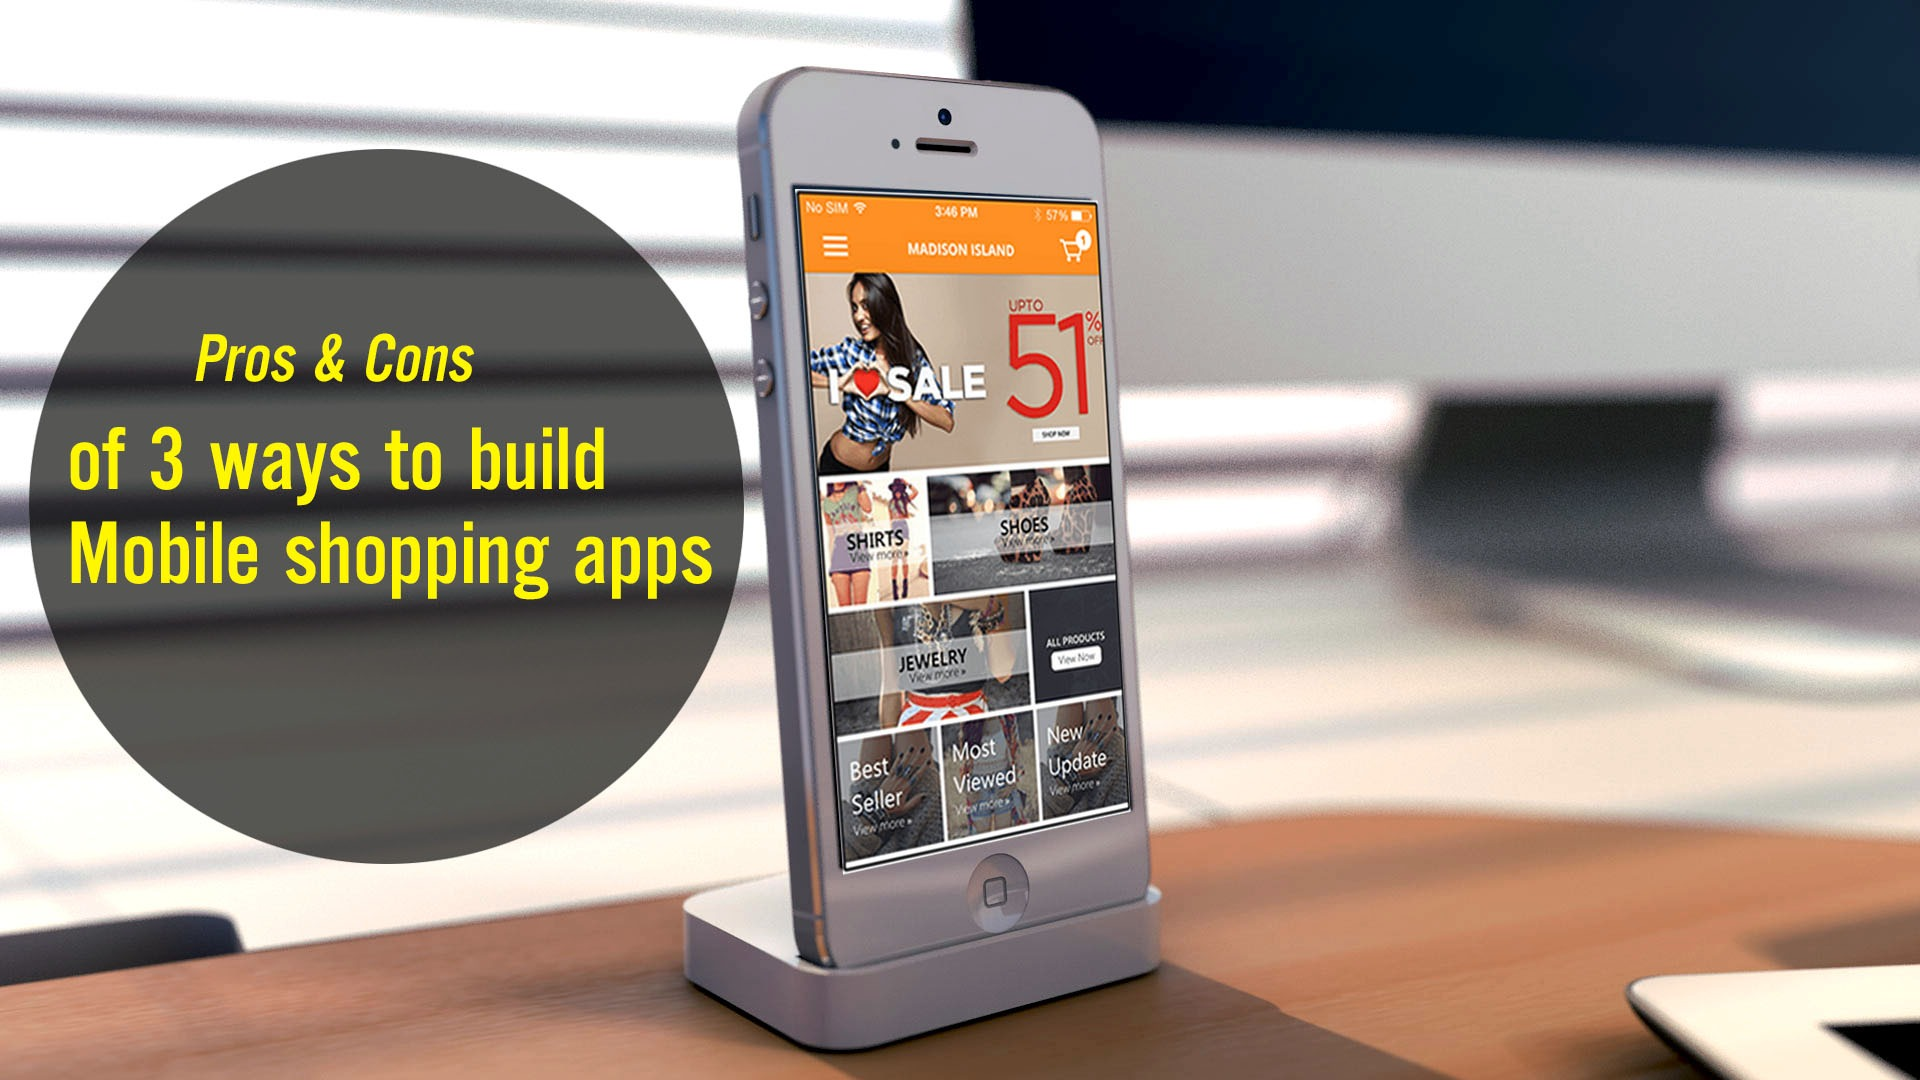 pros-and-cons-of-3-ways-to-build-mobile-shopping-apps